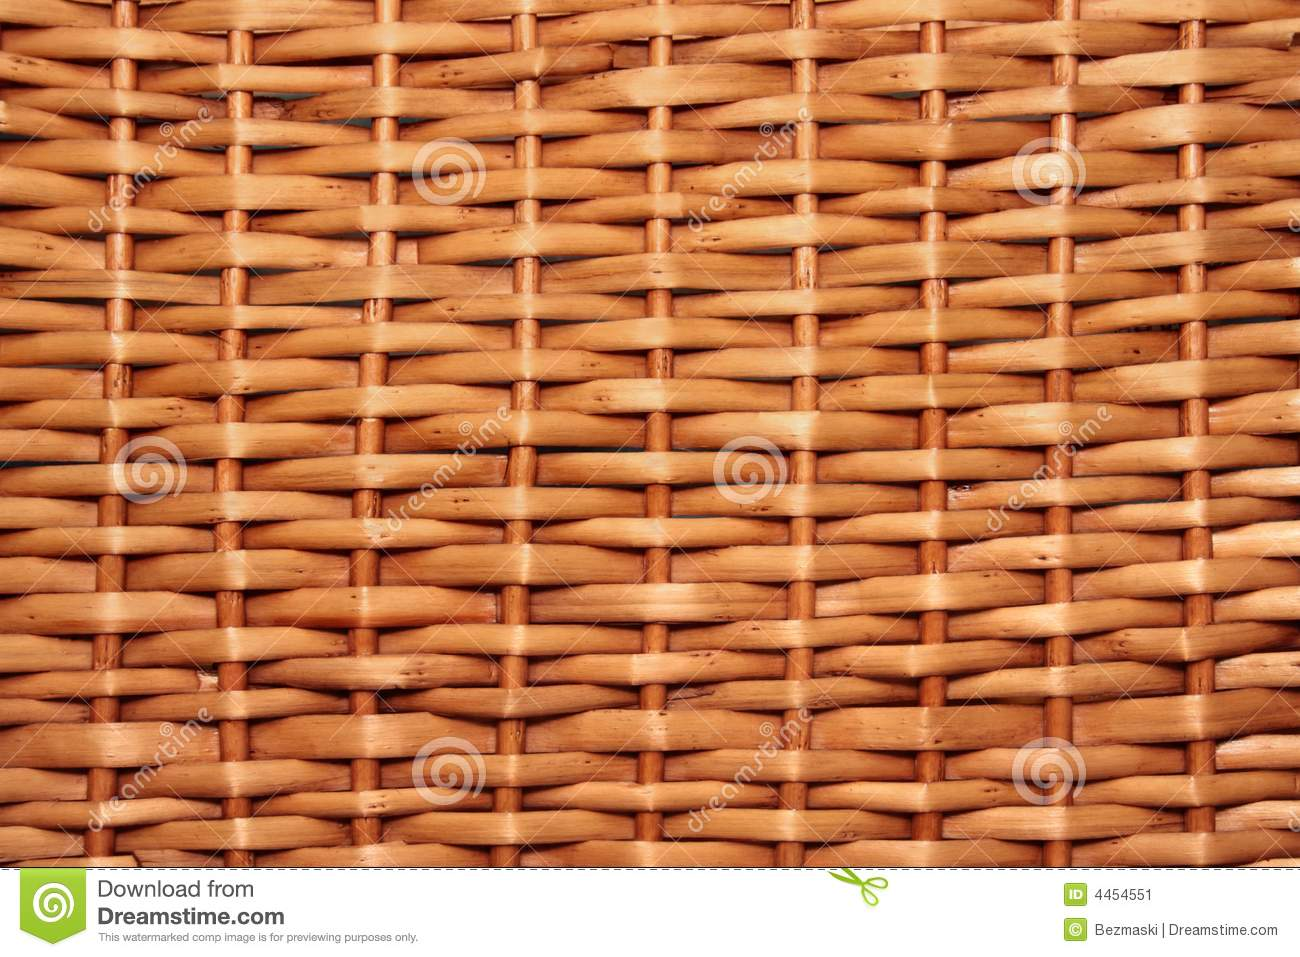 Wicker basket texture